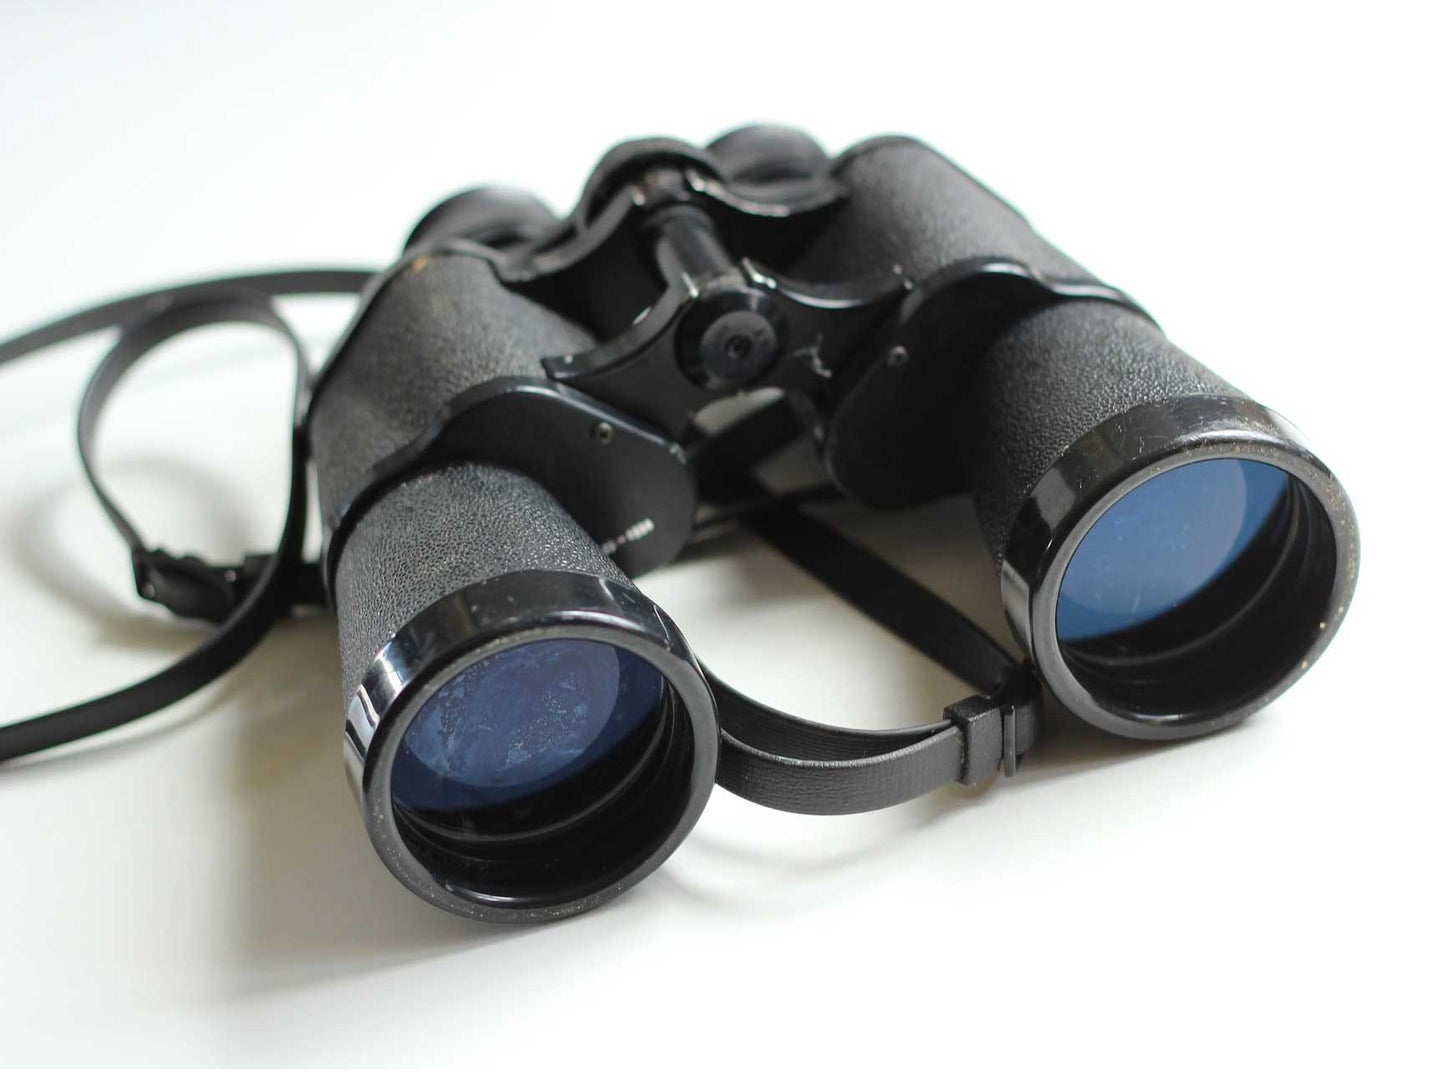 Three Things To Know Before You Buy A Binocular Harness